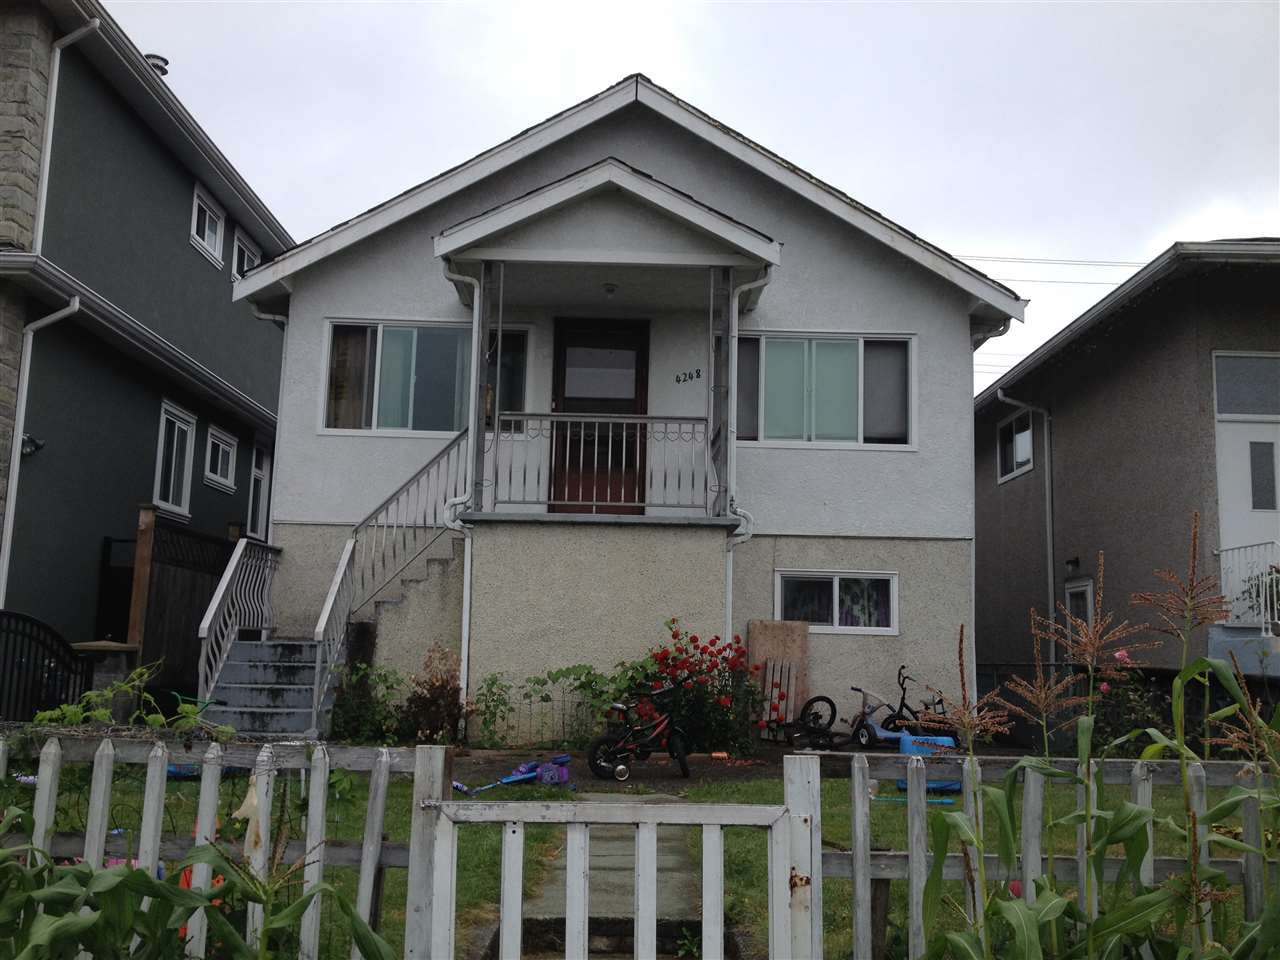 Main Photo: 4248 SLOCAN Street in Vancouver: Renfrew Heights House for sale (Vancouver East)  : MLS®# R2097515